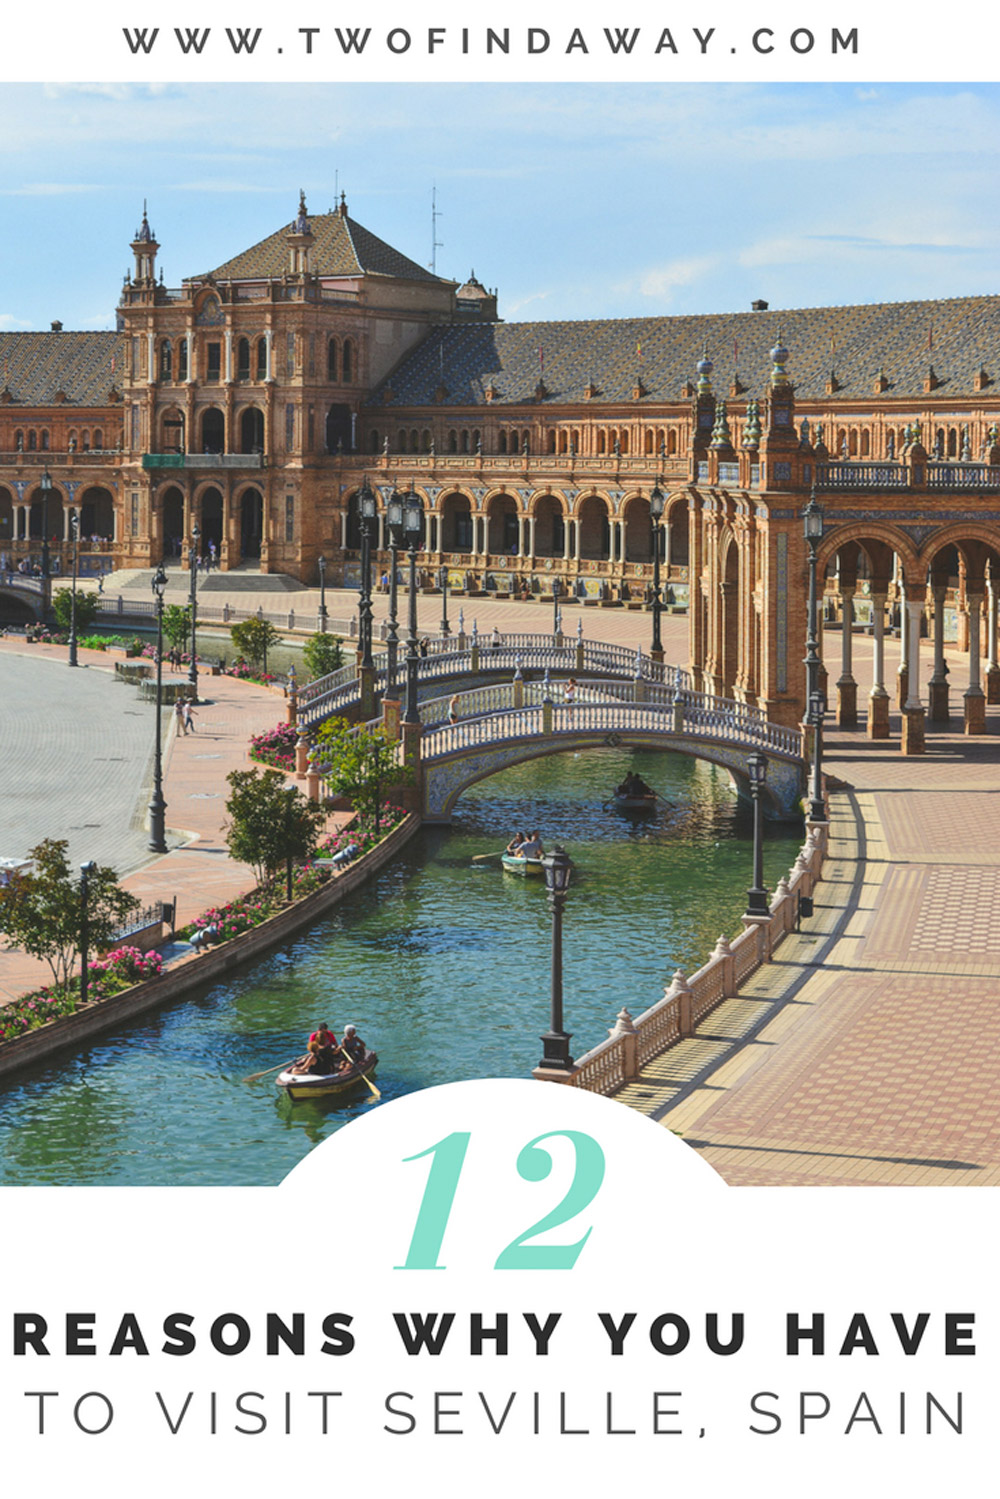 Seville in Spain is one of the most beautiful cities in the world! Here are 12 reasons why you must visit and the Seville attractions you can't miss!